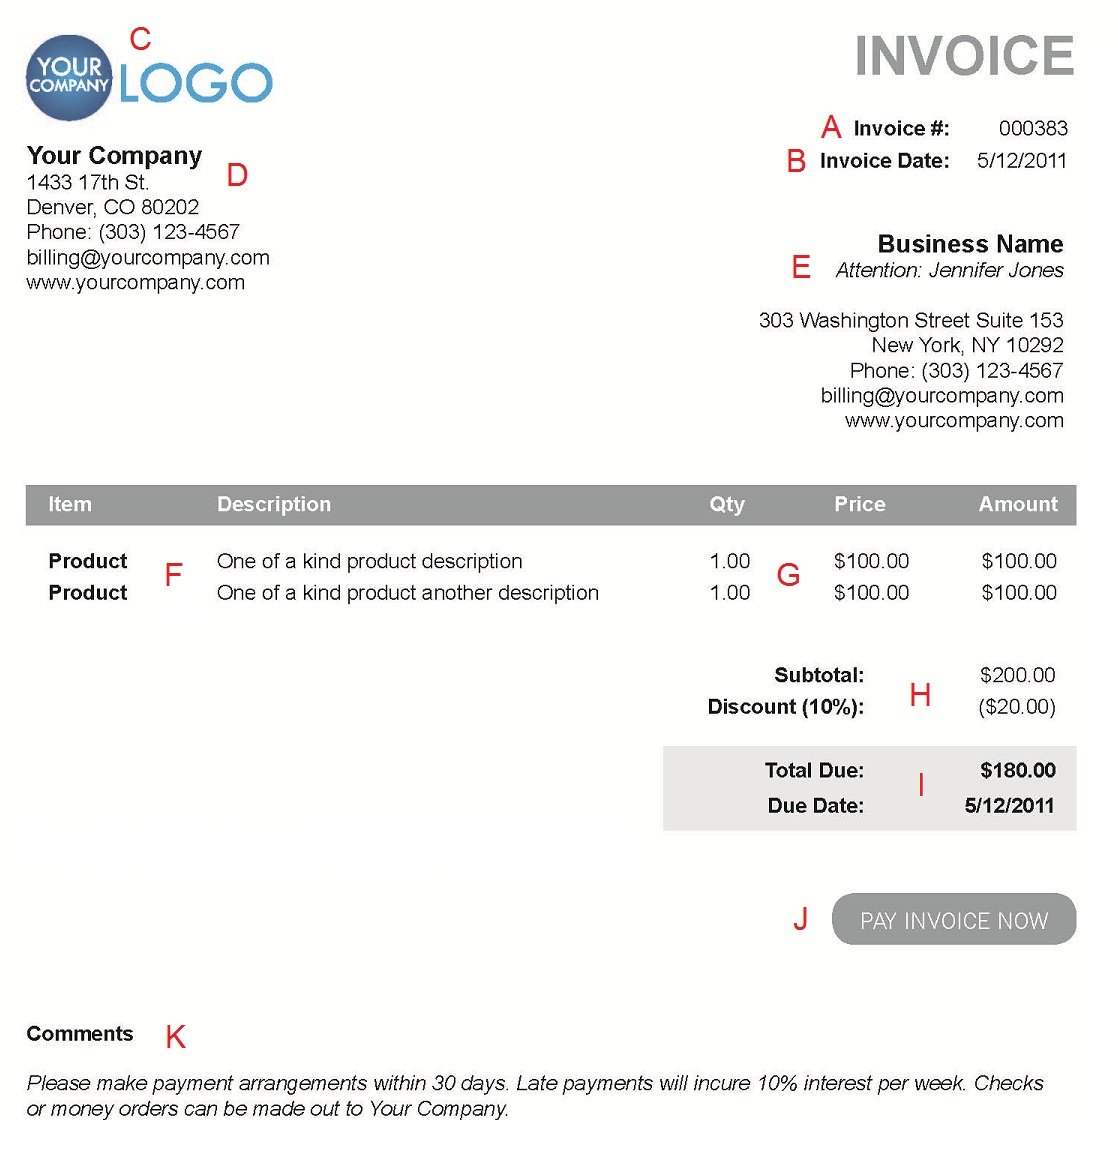 Occupyhistoryus  Winning The  Different Sections Of An Electronic Payment Invoice With Engaging A  With Cute Vendor Invoices Also Sending An Invoice In Addition Printable Invoices Online And Legal Invoice Template As Well As Template For An Invoice Additionally Job Invoices From Paysimplecom With Occupyhistoryus  Engaging The  Different Sections Of An Electronic Payment Invoice With Cute A  And Winning Vendor Invoices Also Sending An Invoice In Addition Printable Invoices Online From Paysimplecom